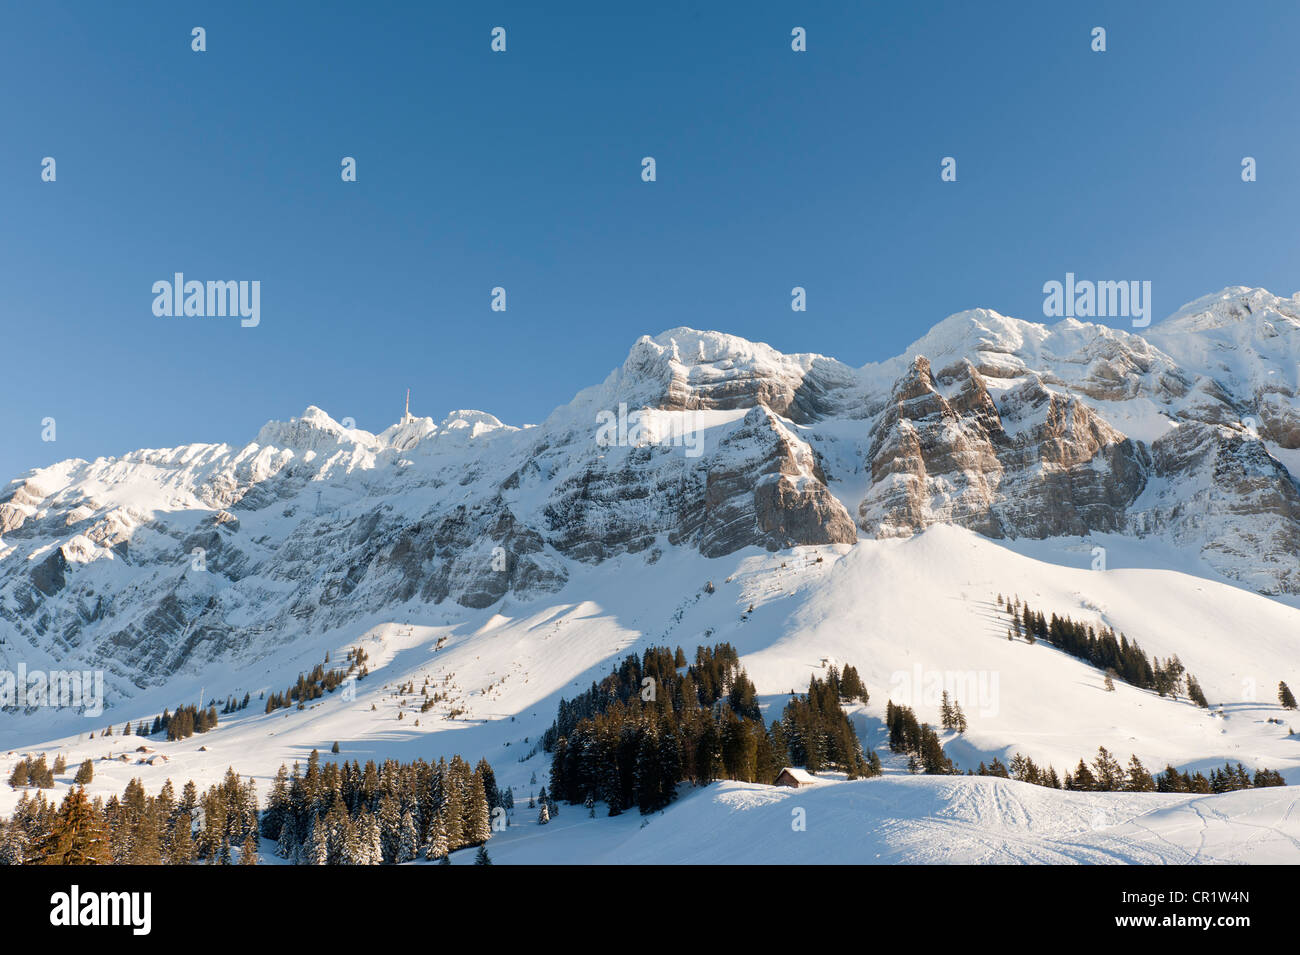 Saentis Massif In The Winter With Mt Saentis 2500m